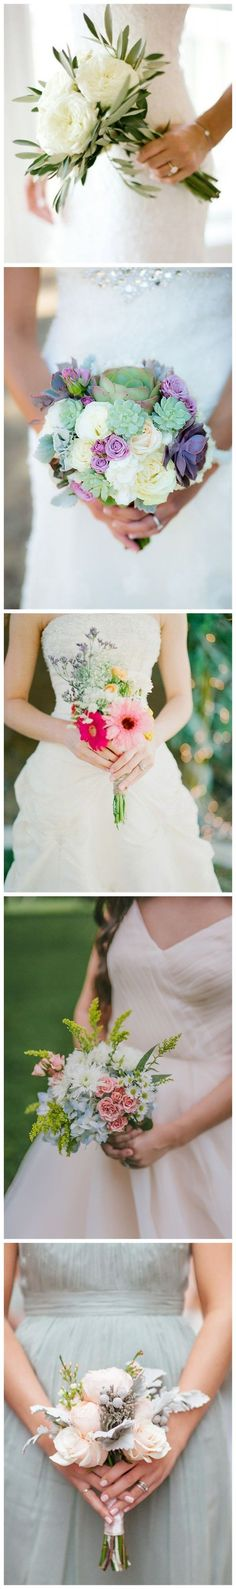 I really like the  Soft Colored Bouquet with frost details.